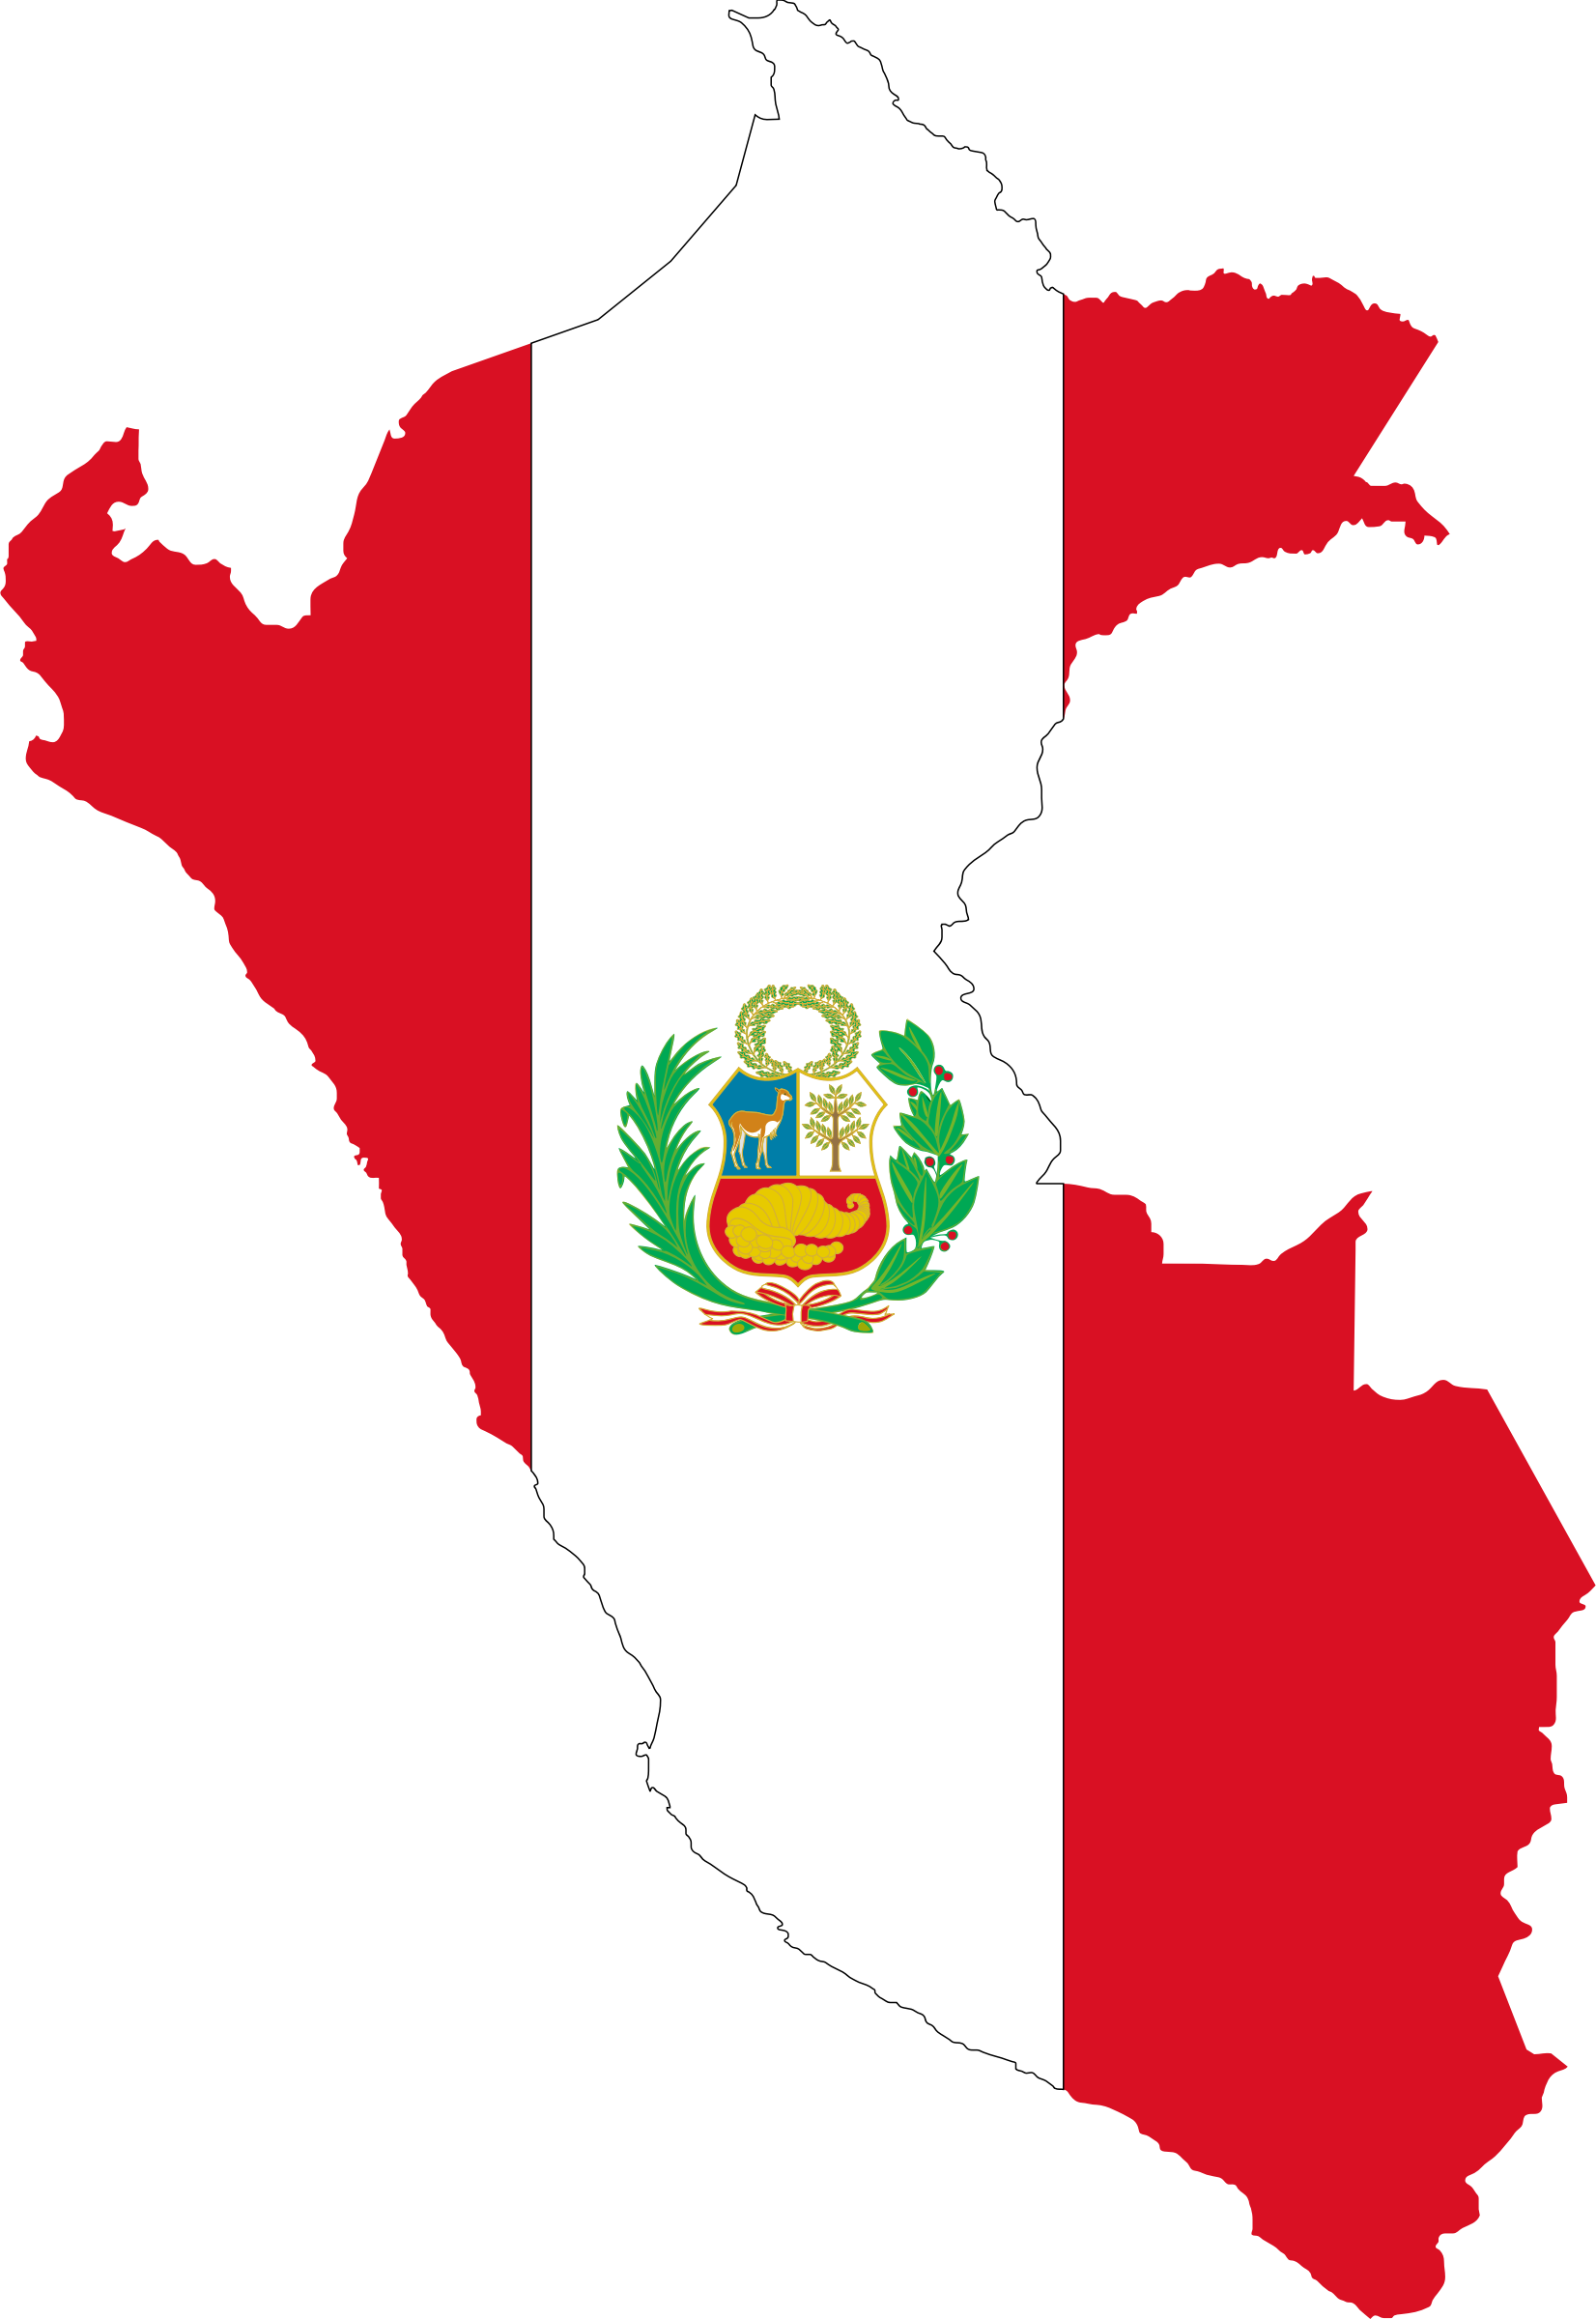 Win clipart cathedral window. Image result for peru